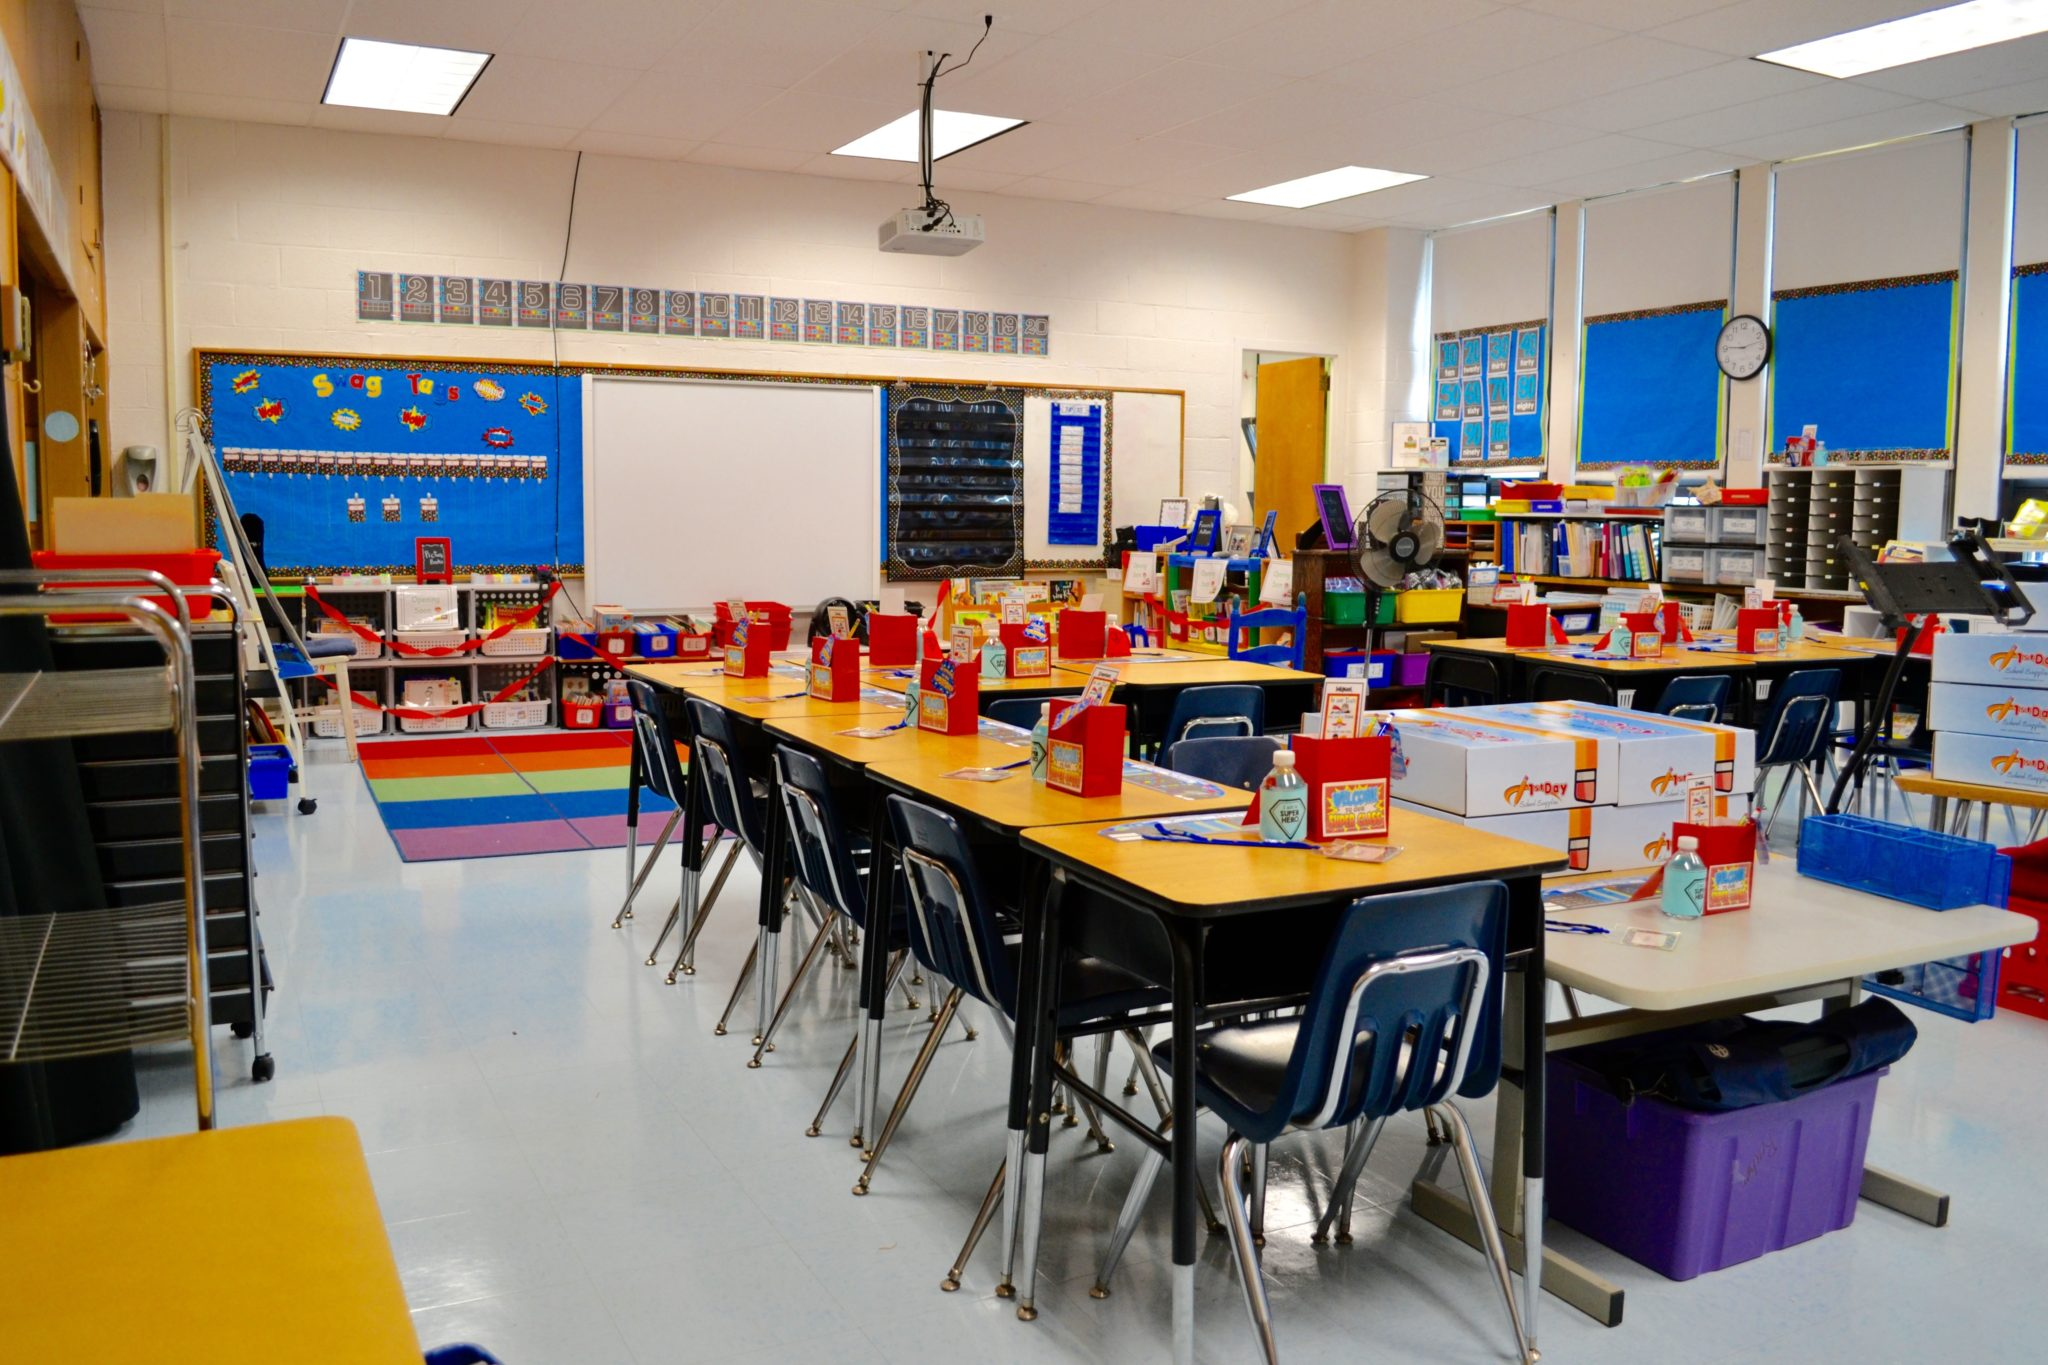 Clarke school classroom ready for the first day